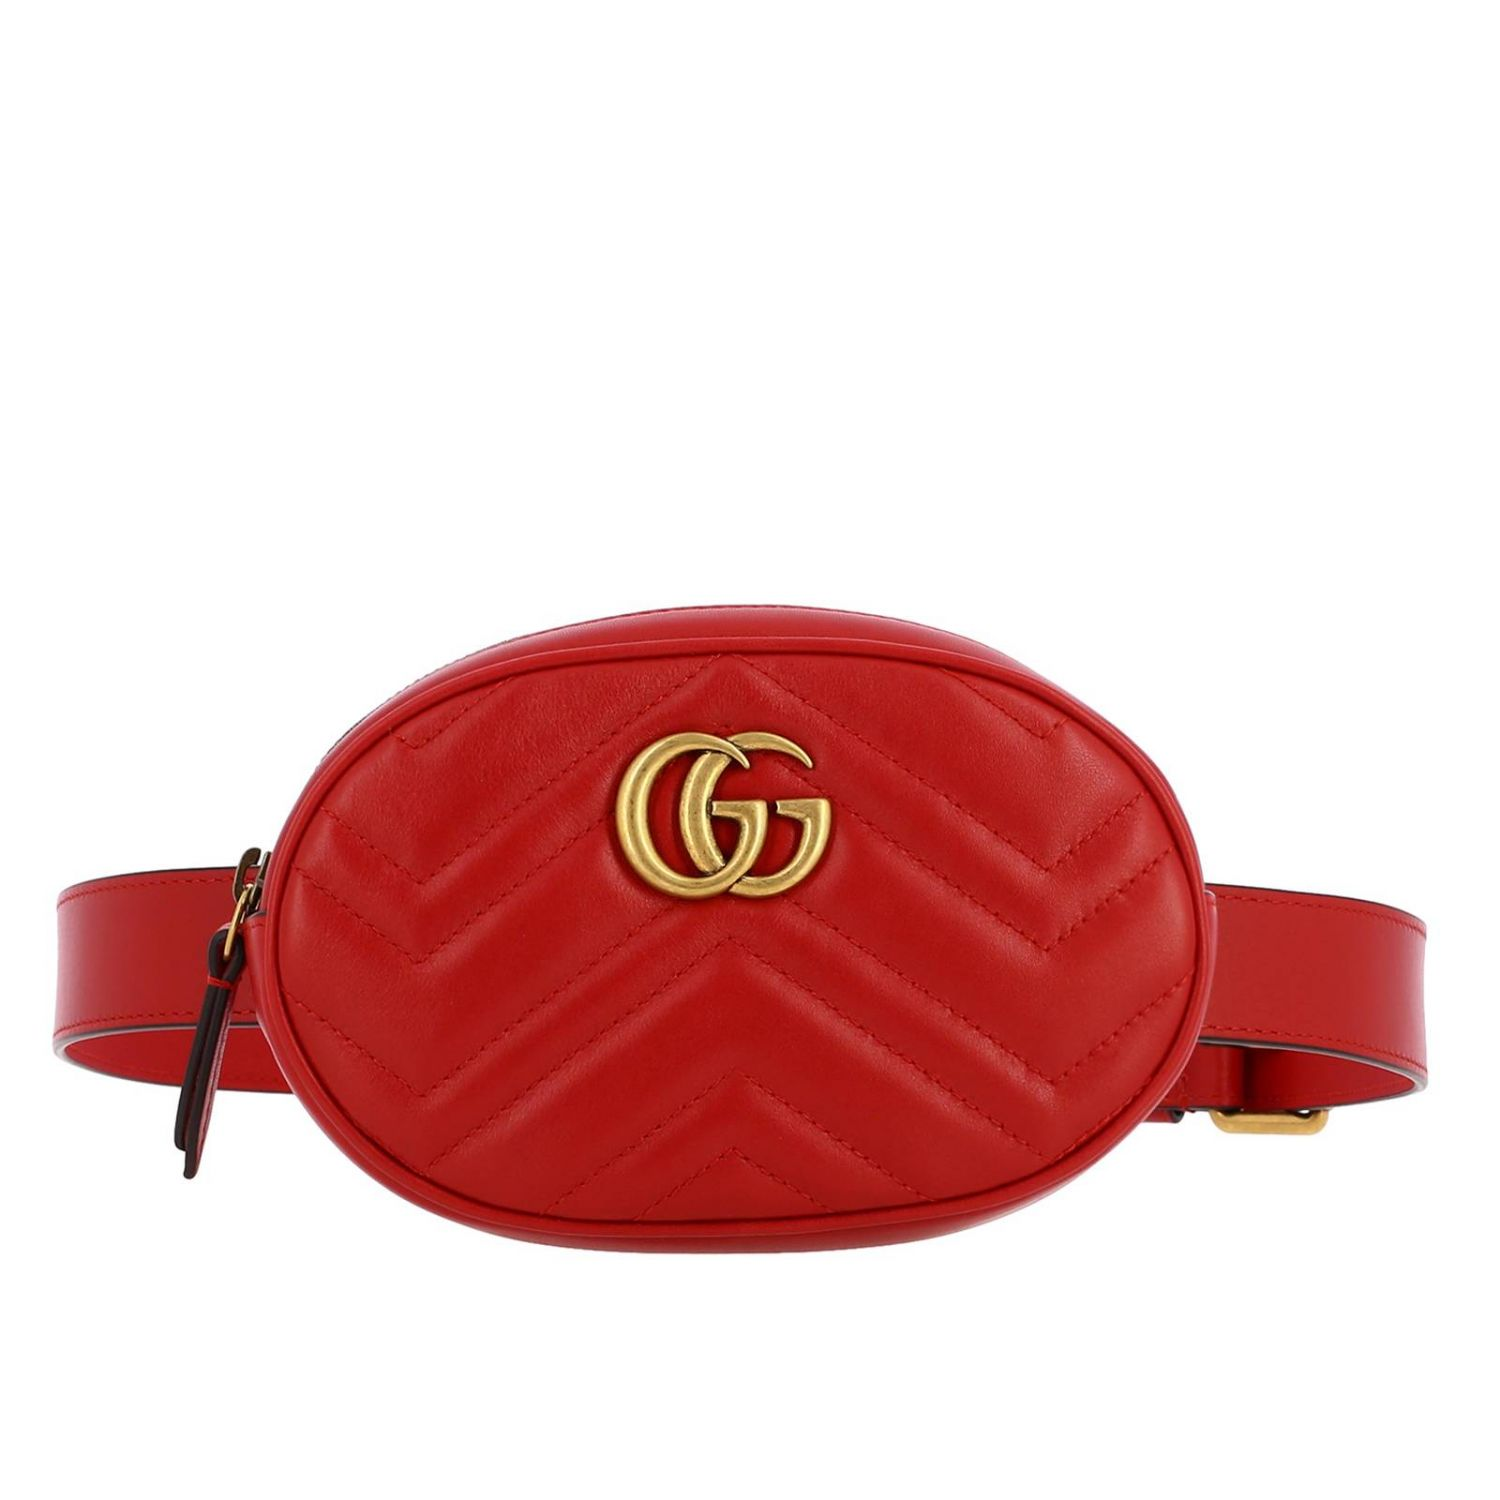 GG Marmont Gucci leather pouch in quilted chevron red 1